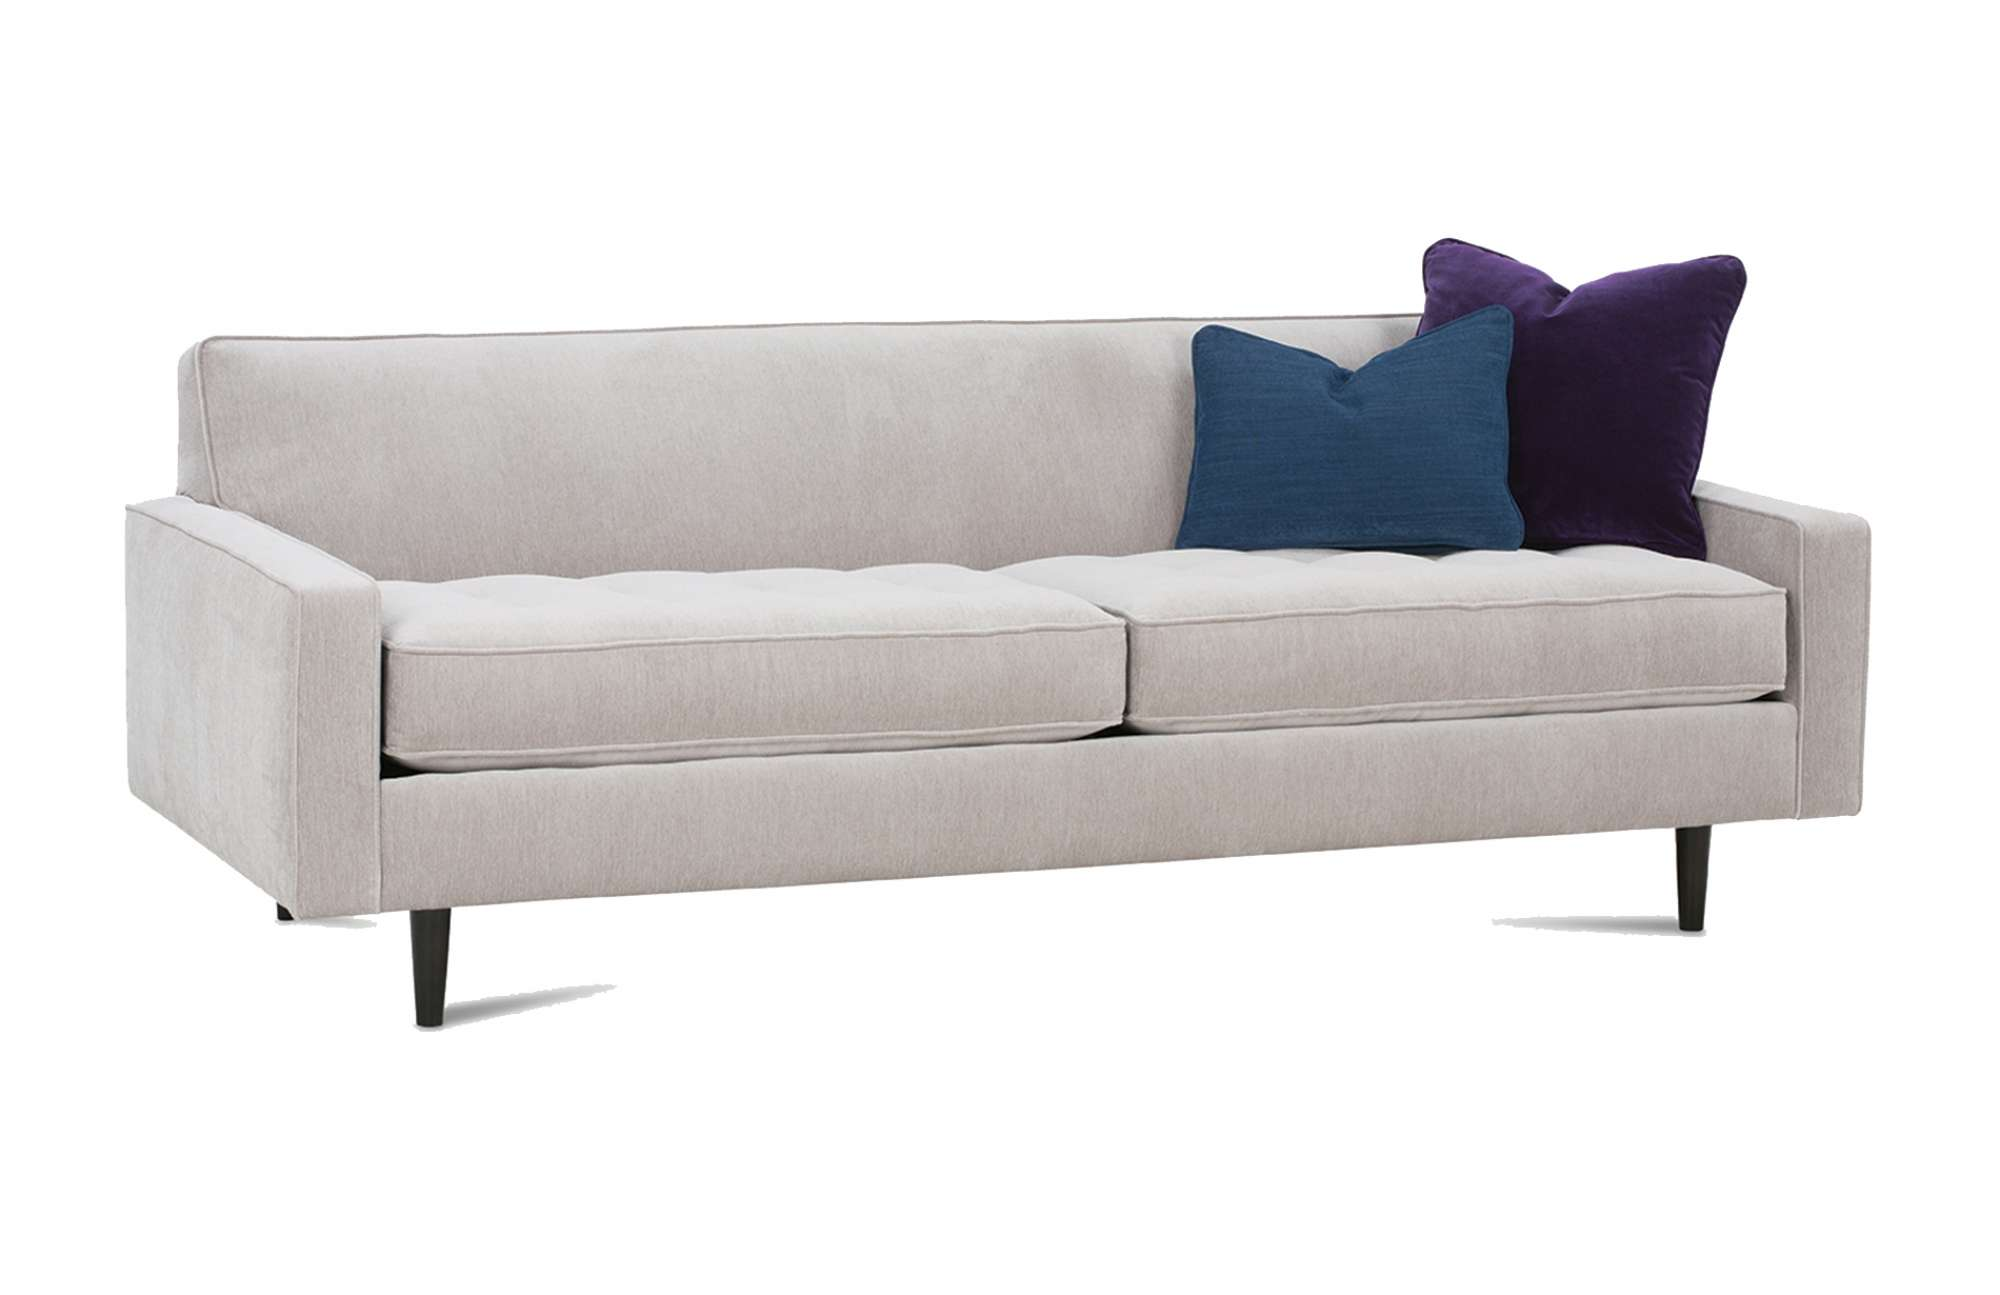 The Modern Look Of The Brady Sofa Would Be A Welcome Compliment To Any  Living Room. Add A Personal Touch To The Body, Pillows, Welts, And Finish.